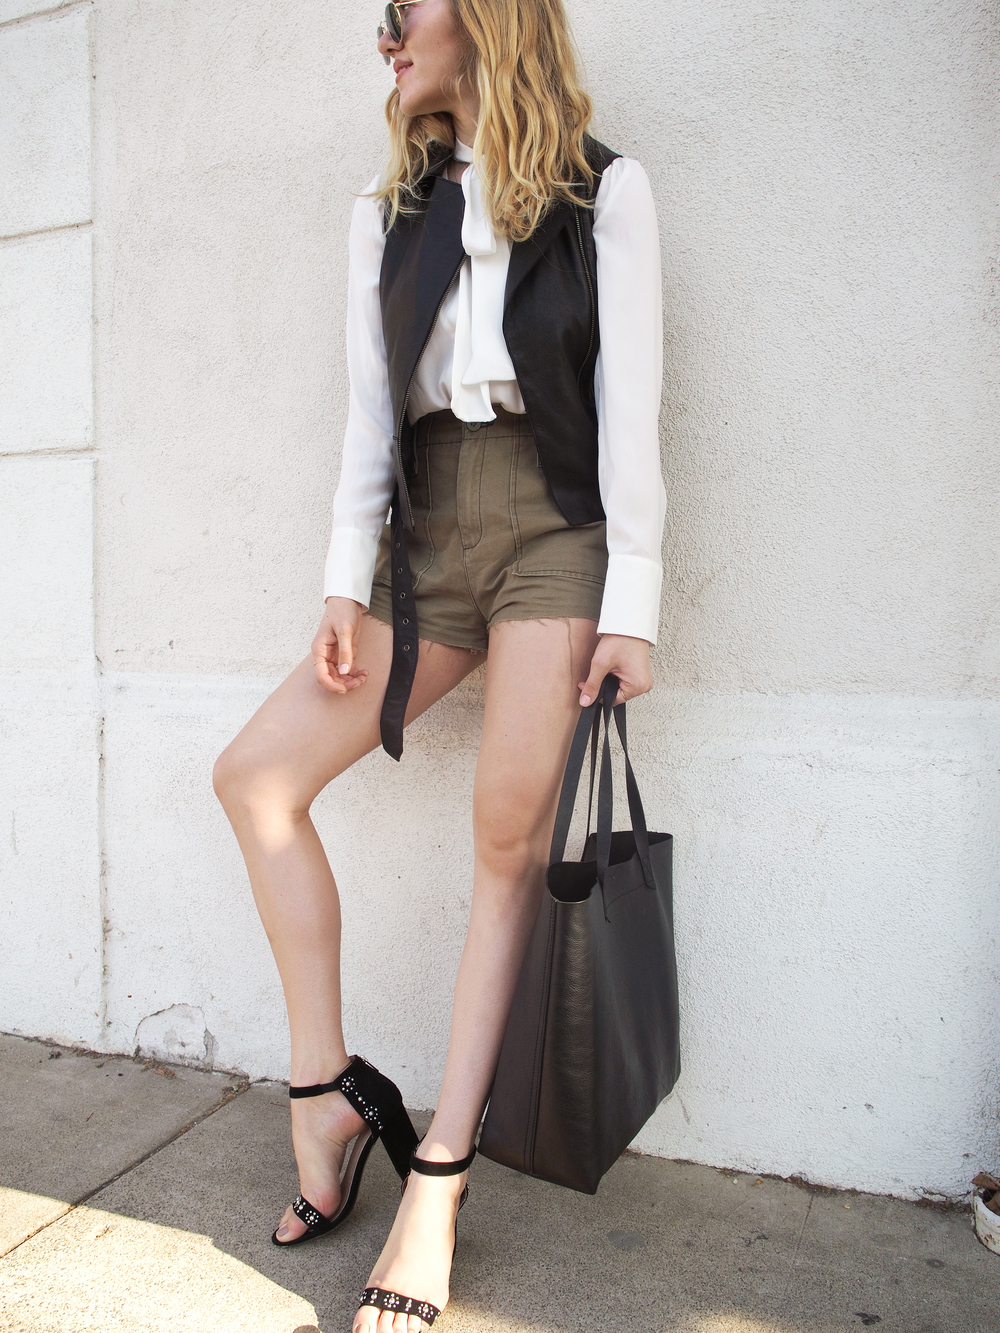 Stylestalker Hollywood Blouse Free People Gunner Shorts Liebeskind Leather Vest Raye The Label Lois Heel Madewell Transport Tote Taylr Anne Street Style www.taylranne.com